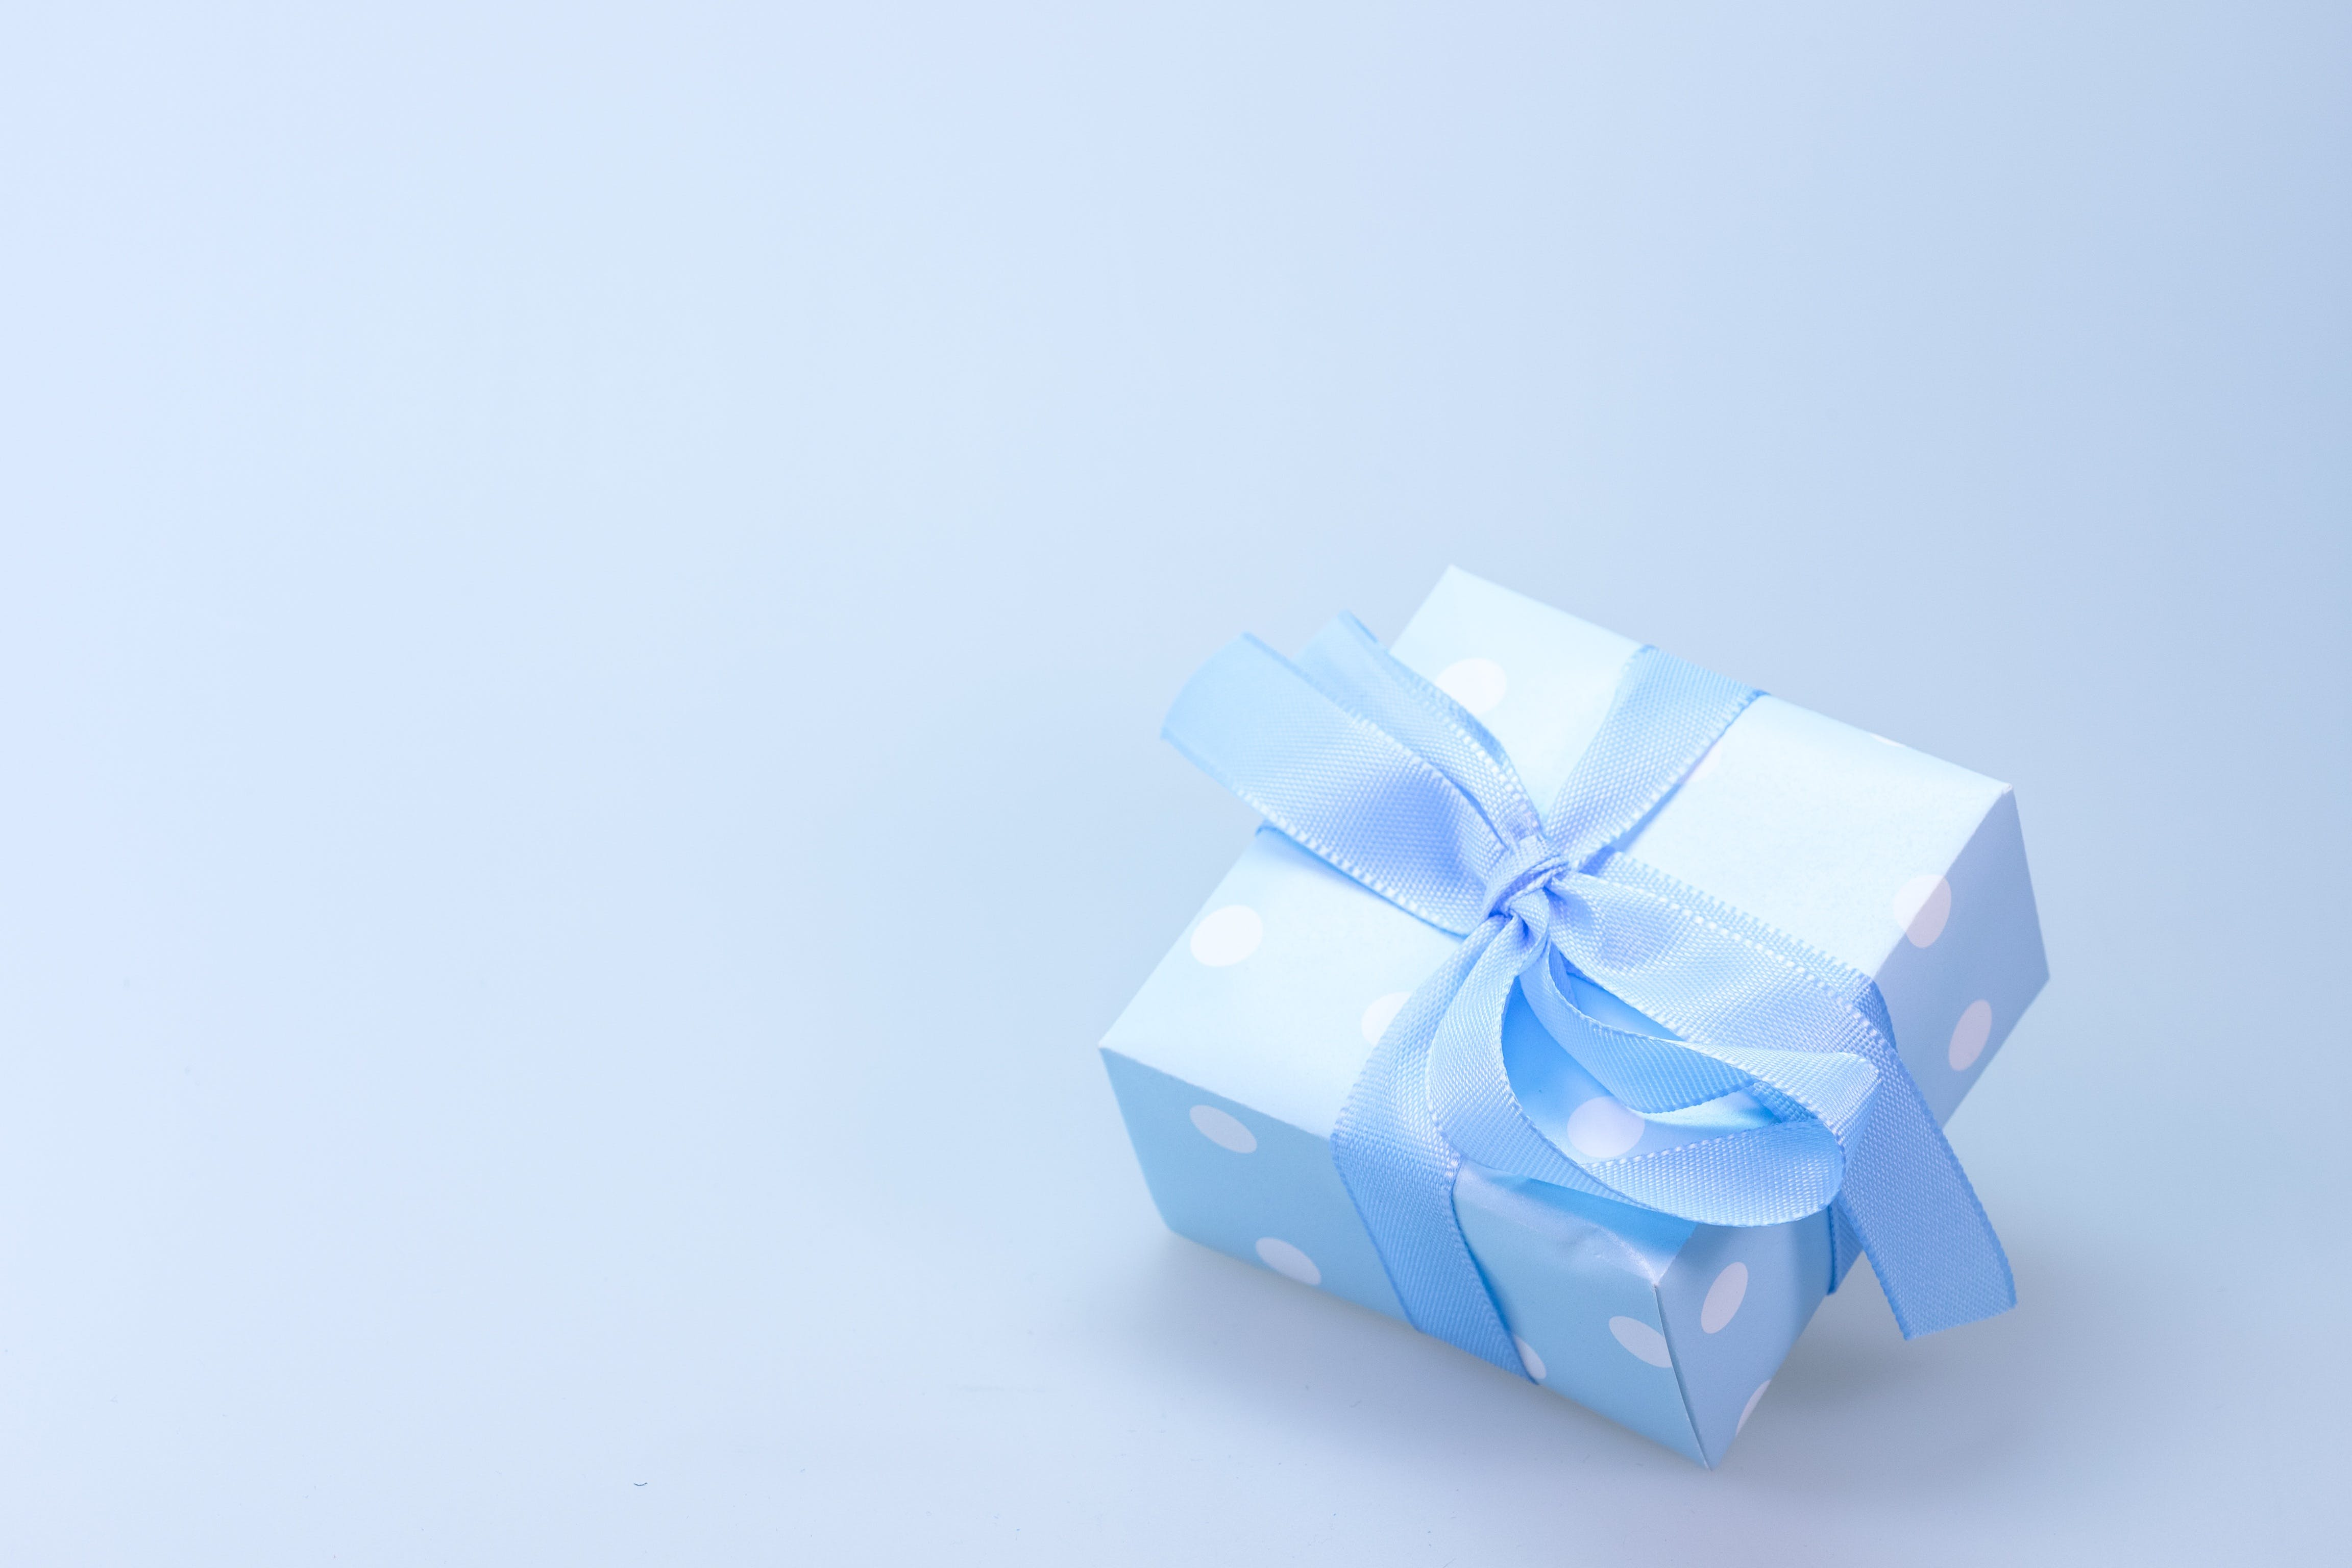 Blue and White Polka Dot Gift Box With Blue Ribbon